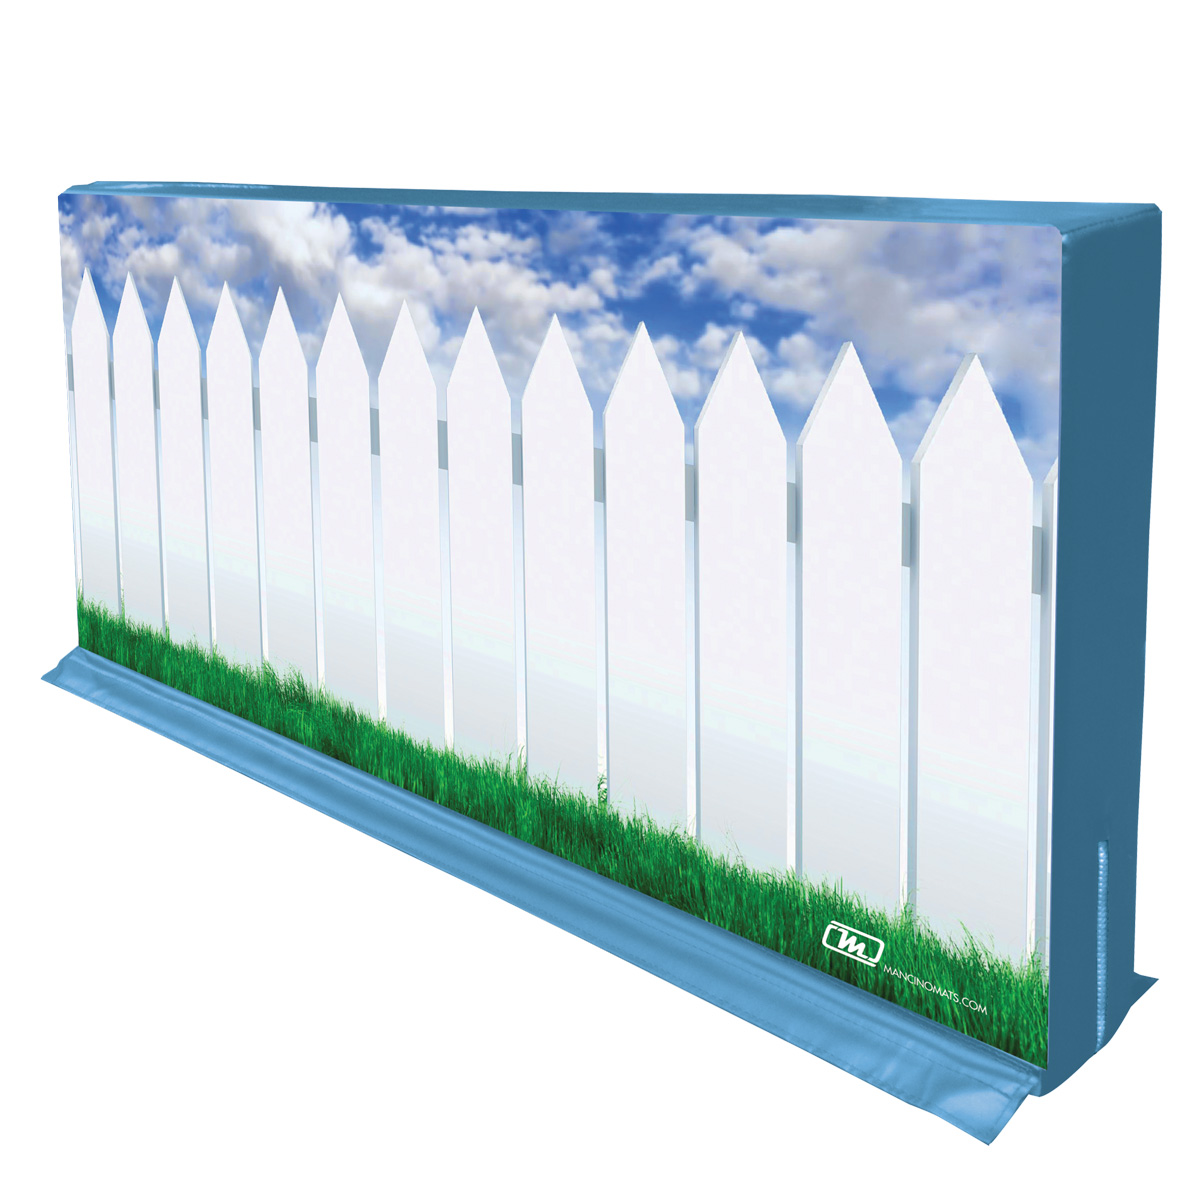 mancino mats picket fence divider partition wall for cheer gyms